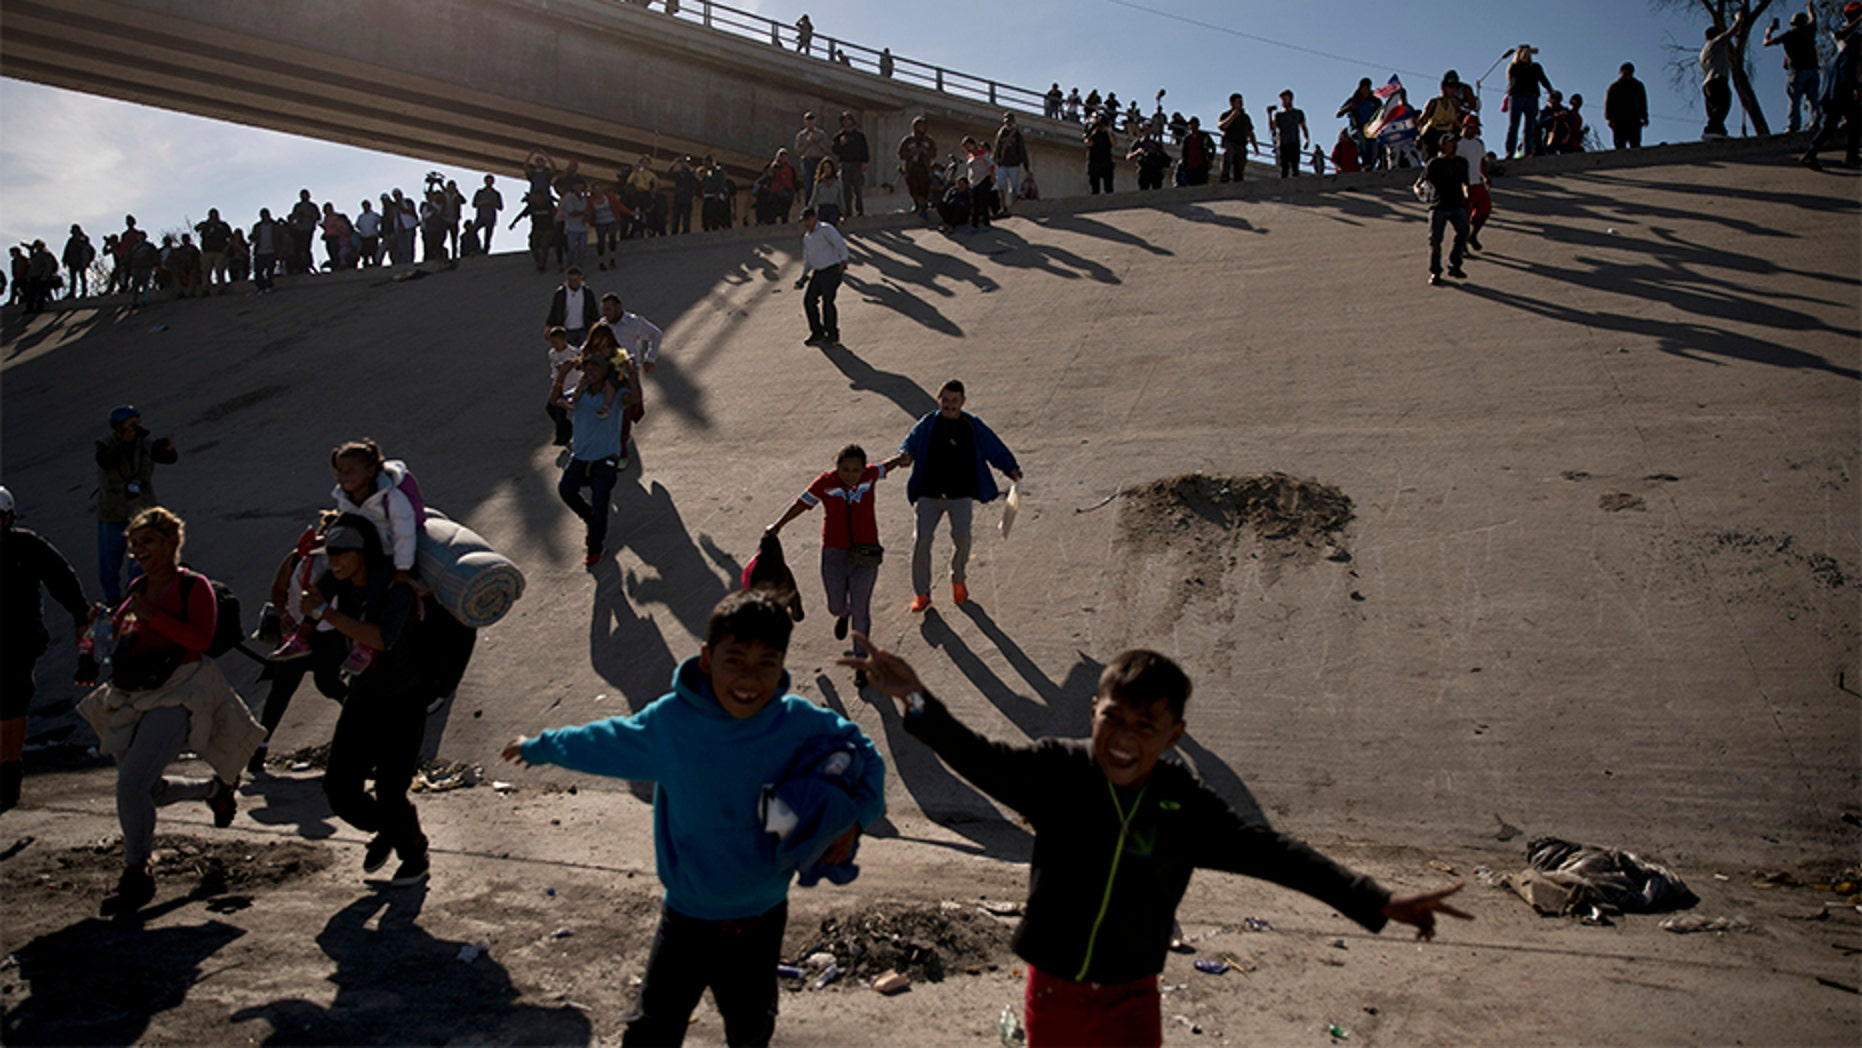 Migrants cross the river at the Mexico-U.S. border after pushing past a line of Mexican police at the Chaparral crossing in Tijuana, Mexico, on Sunday.